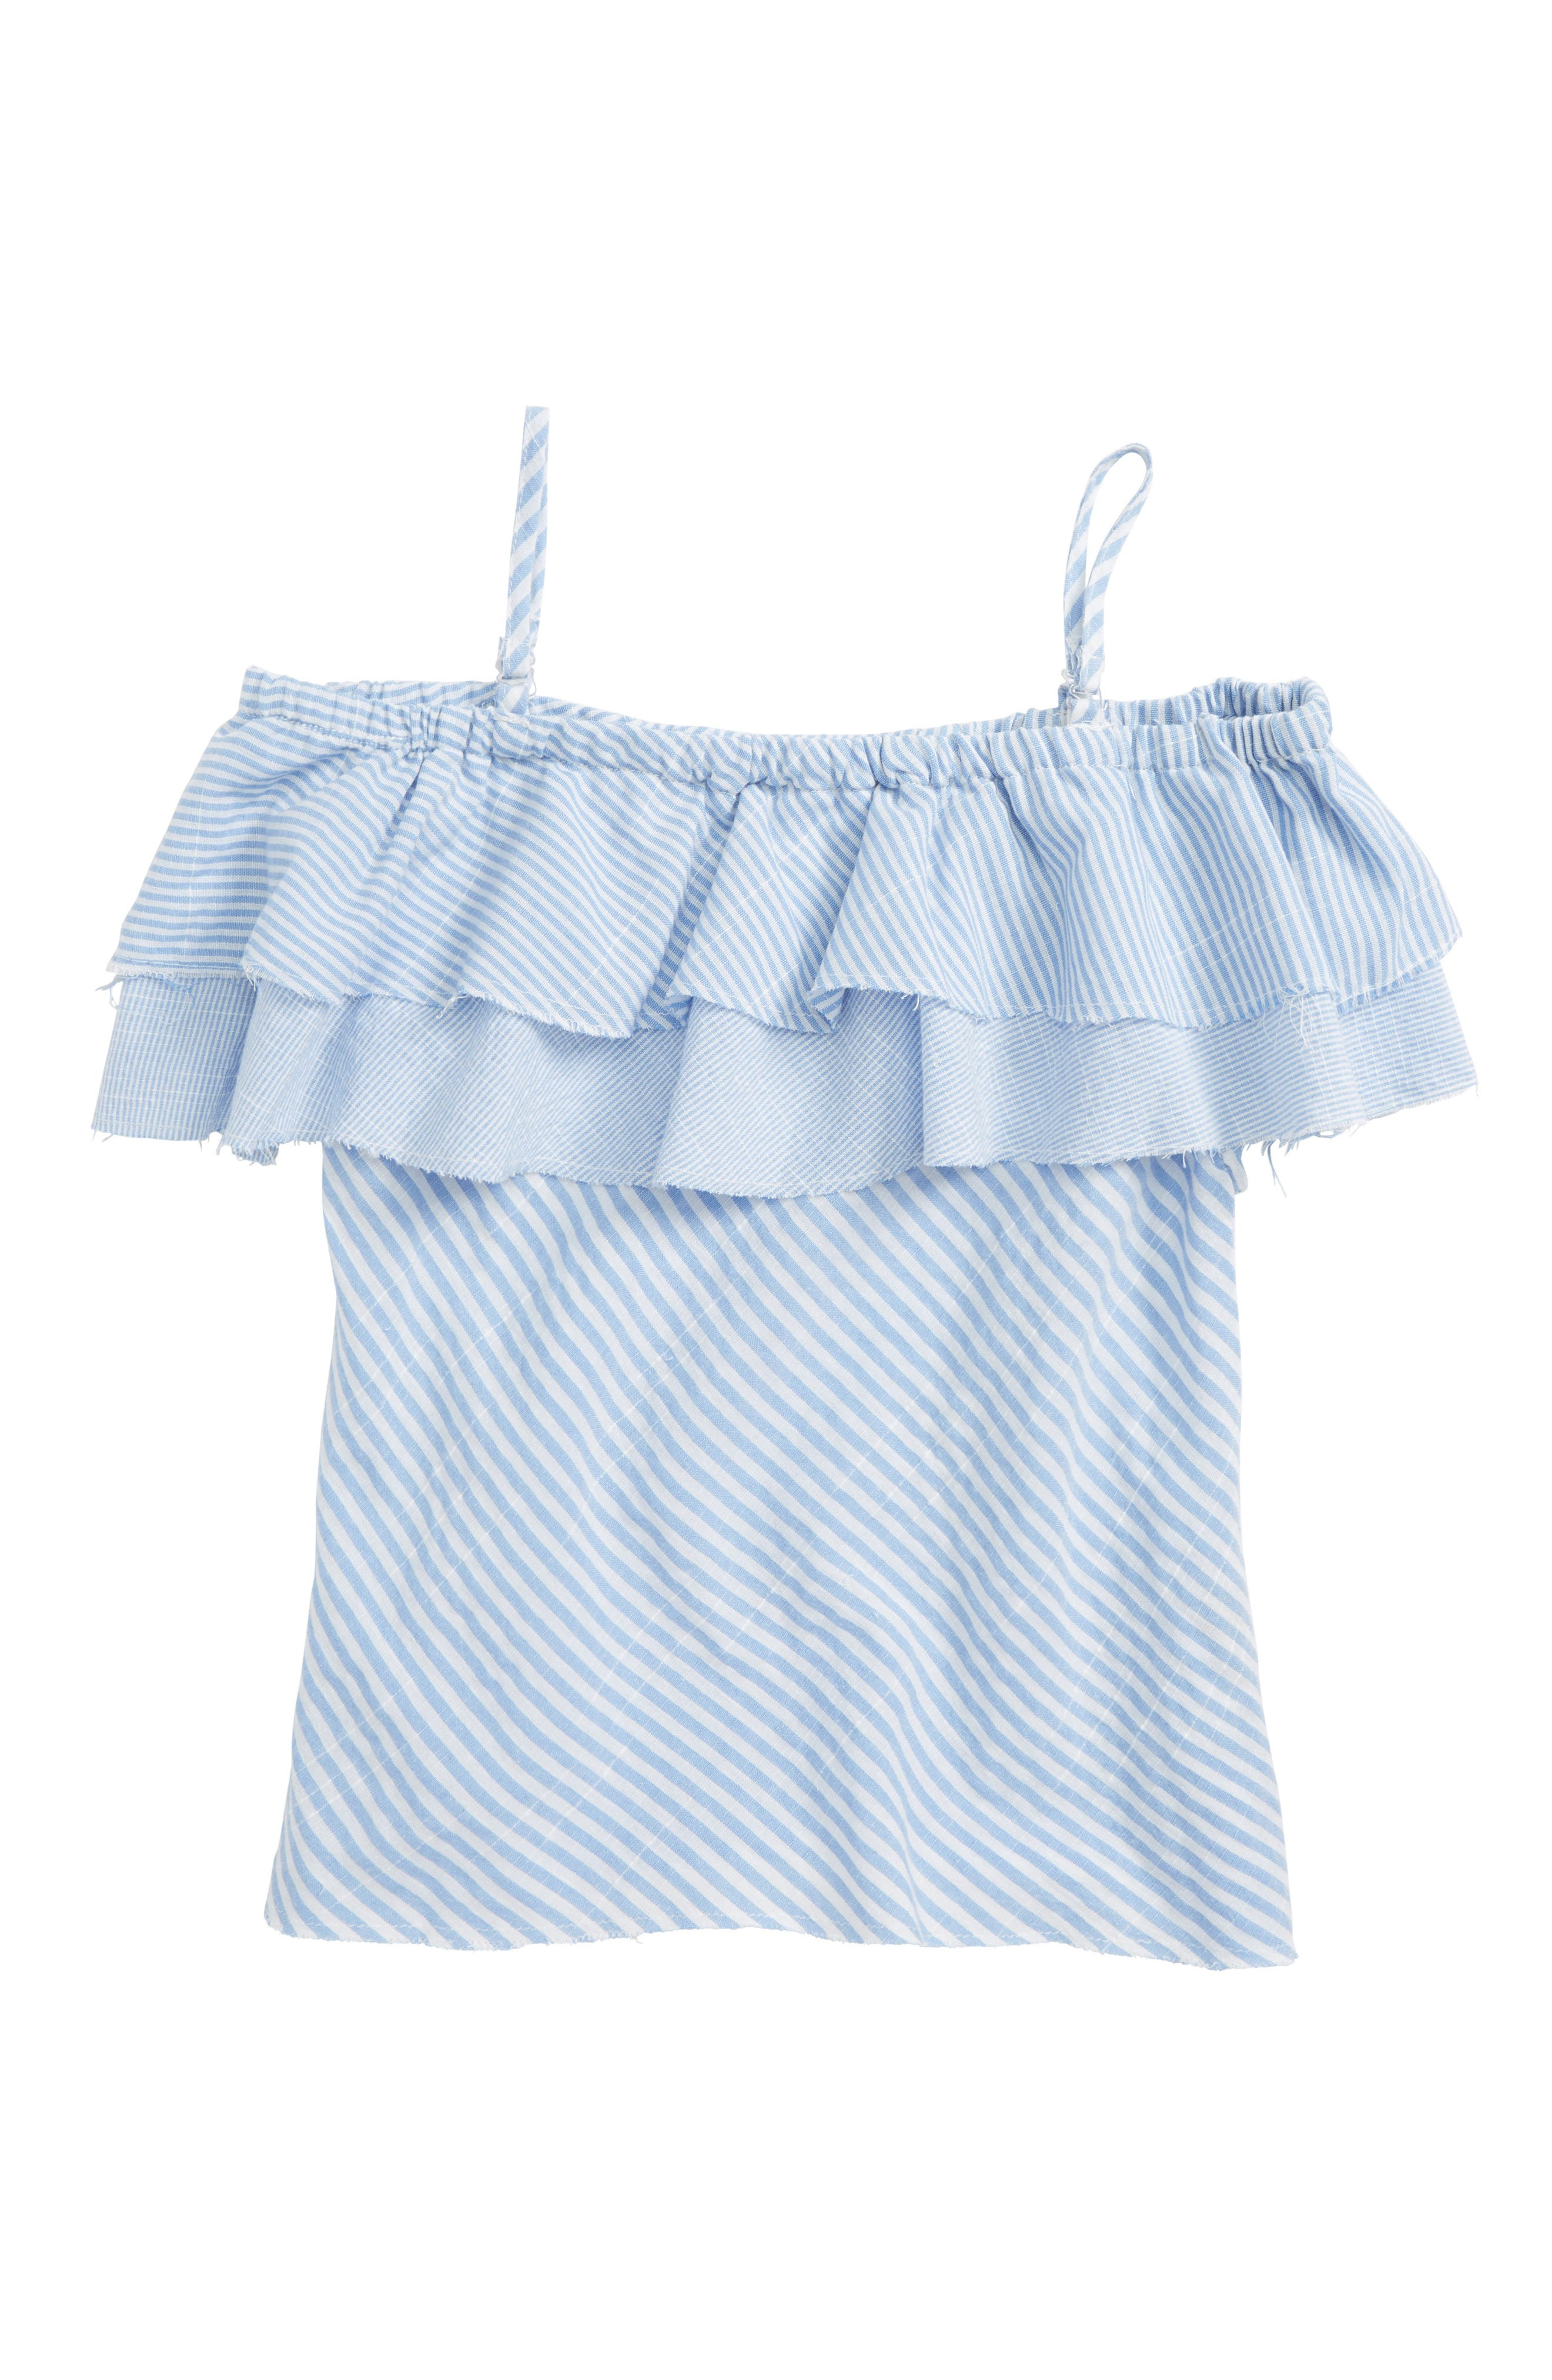 Striped Ruffle Top,                         Main,                         color, Blue/ White